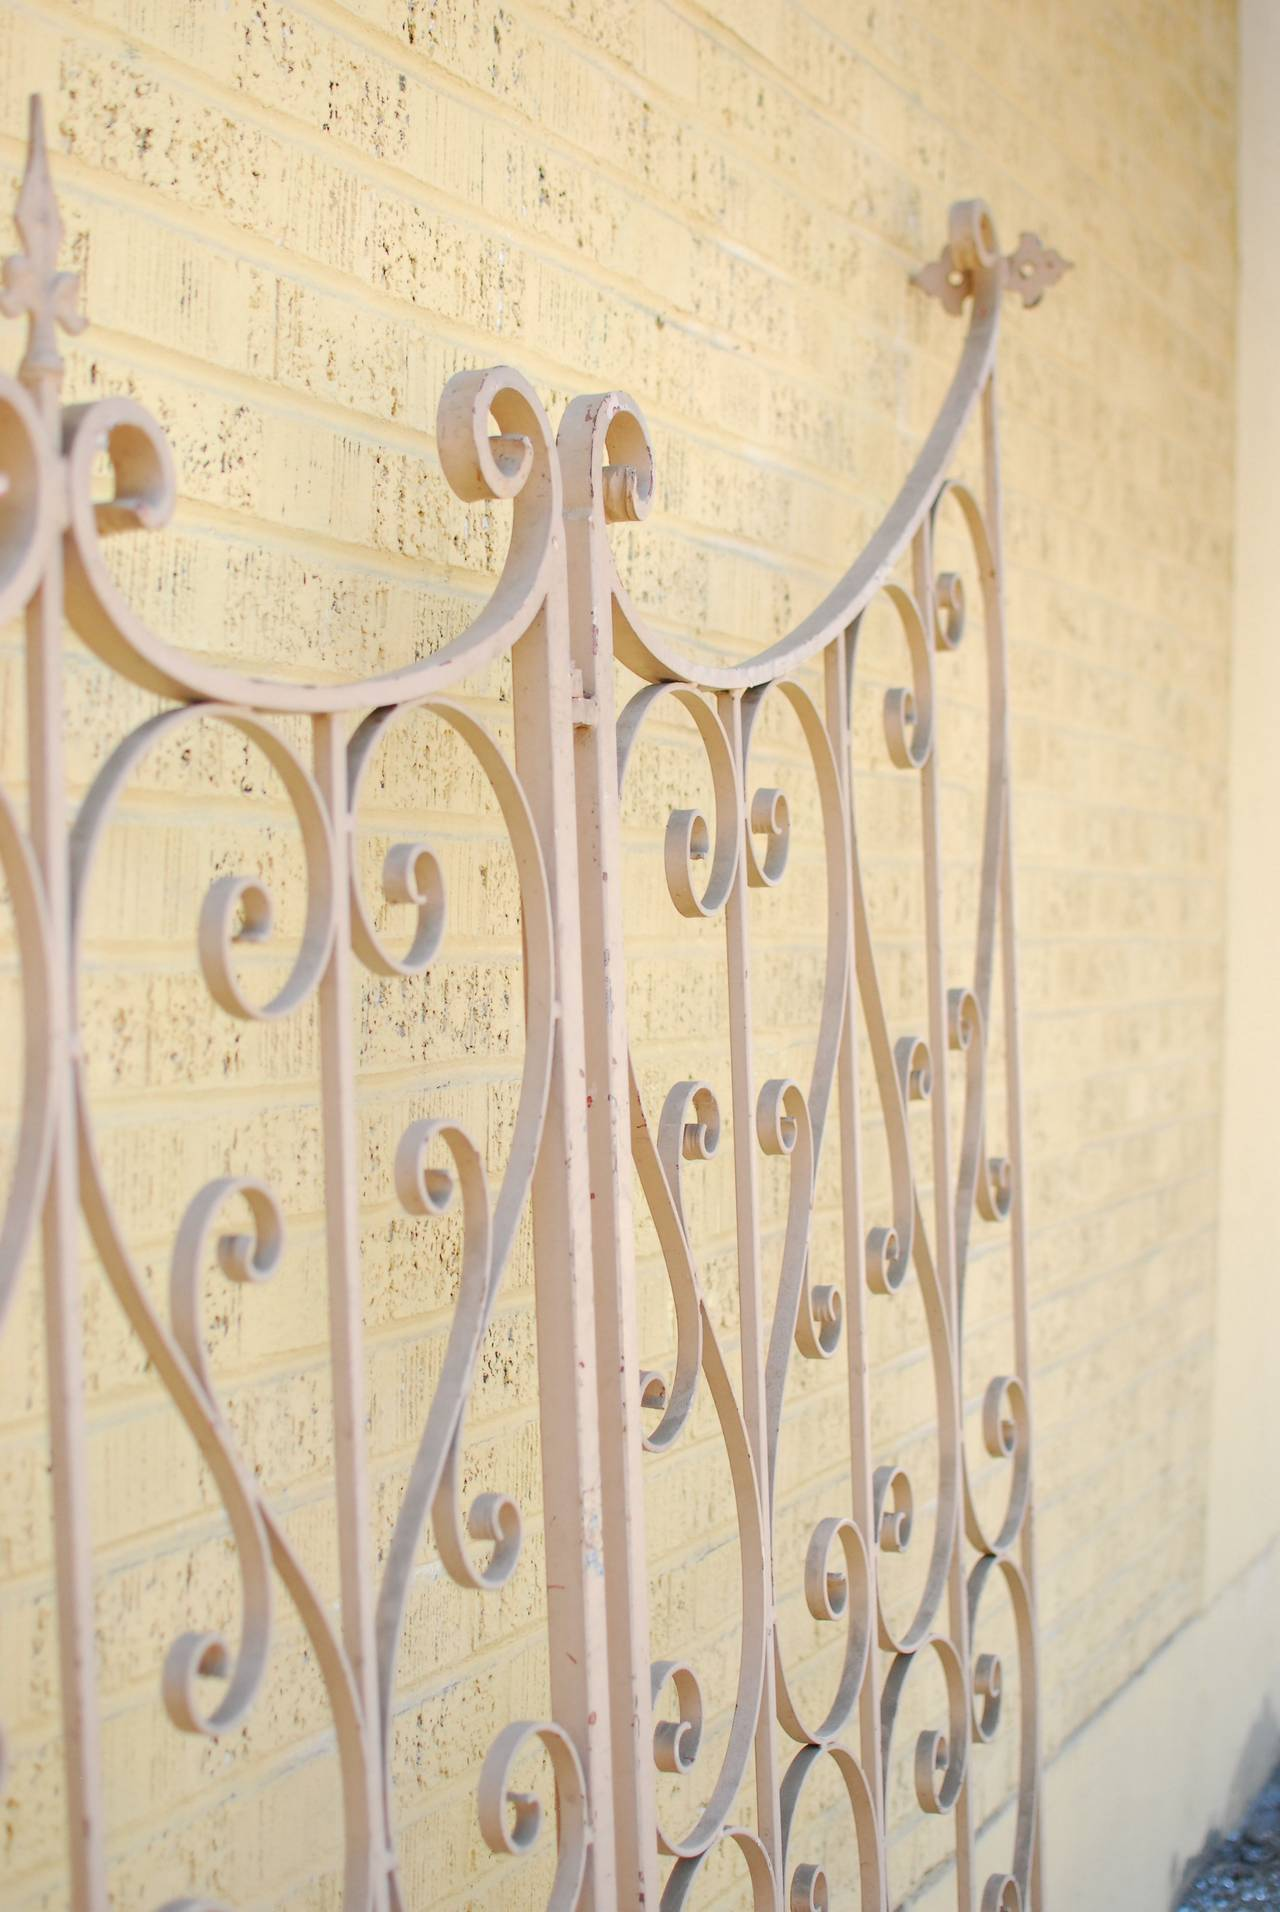 French Wrought Iron Garden Gate or Fence 8